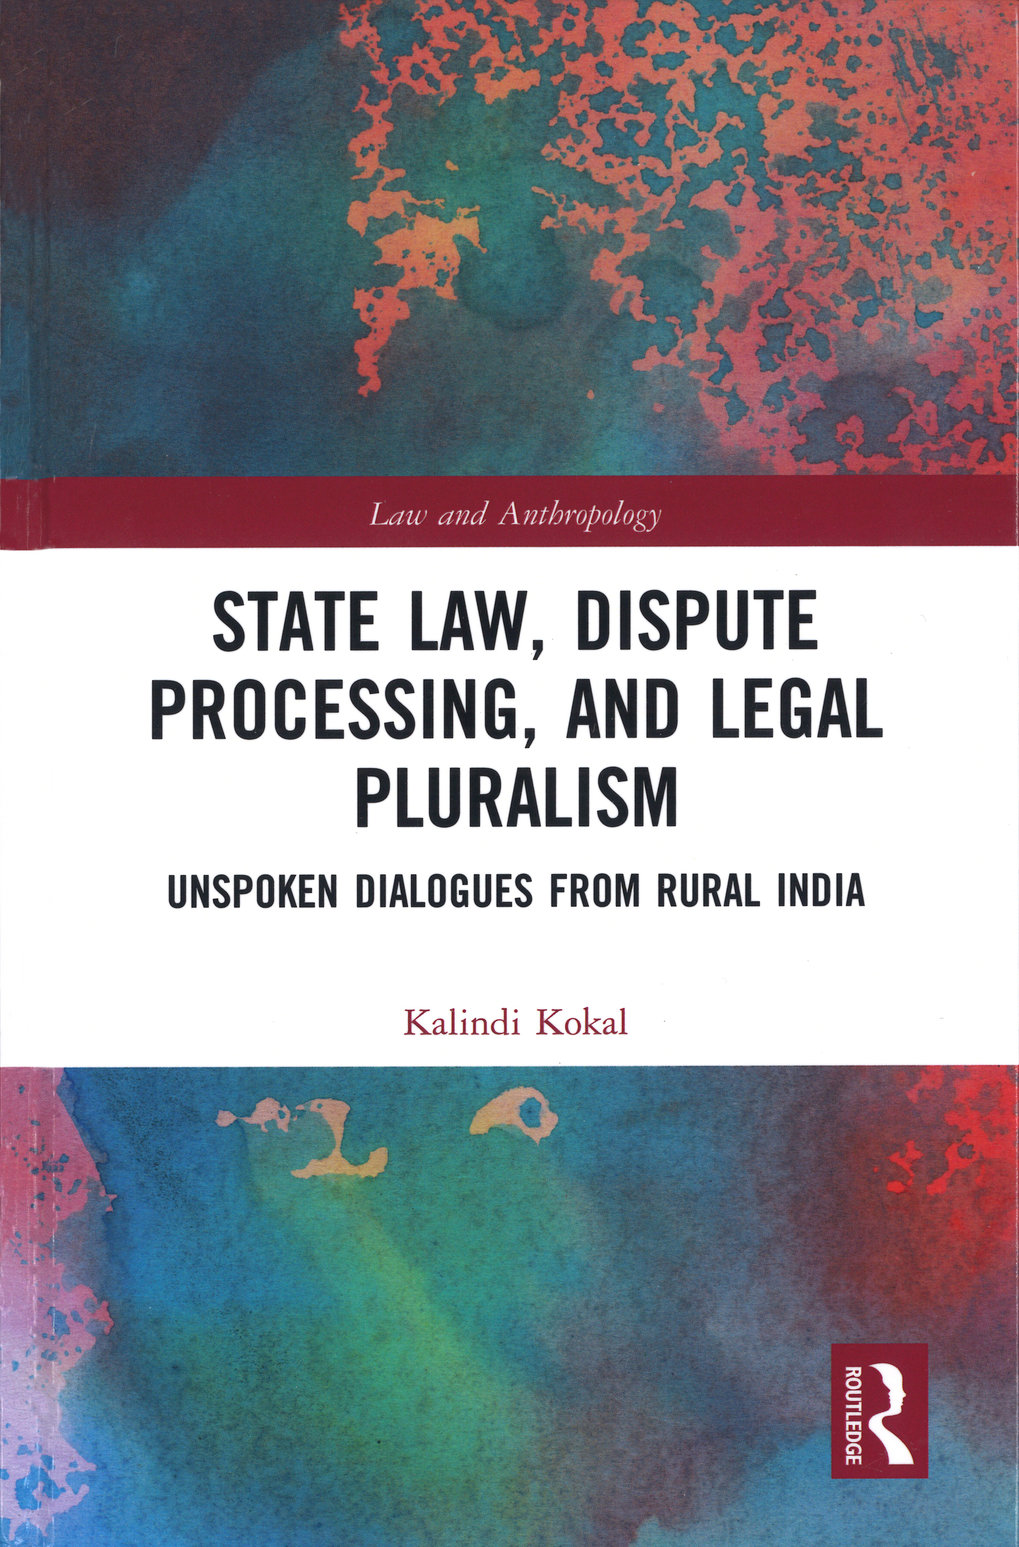 State law, dispute processing, and legal pluralism: unspoken dialogues from rural India